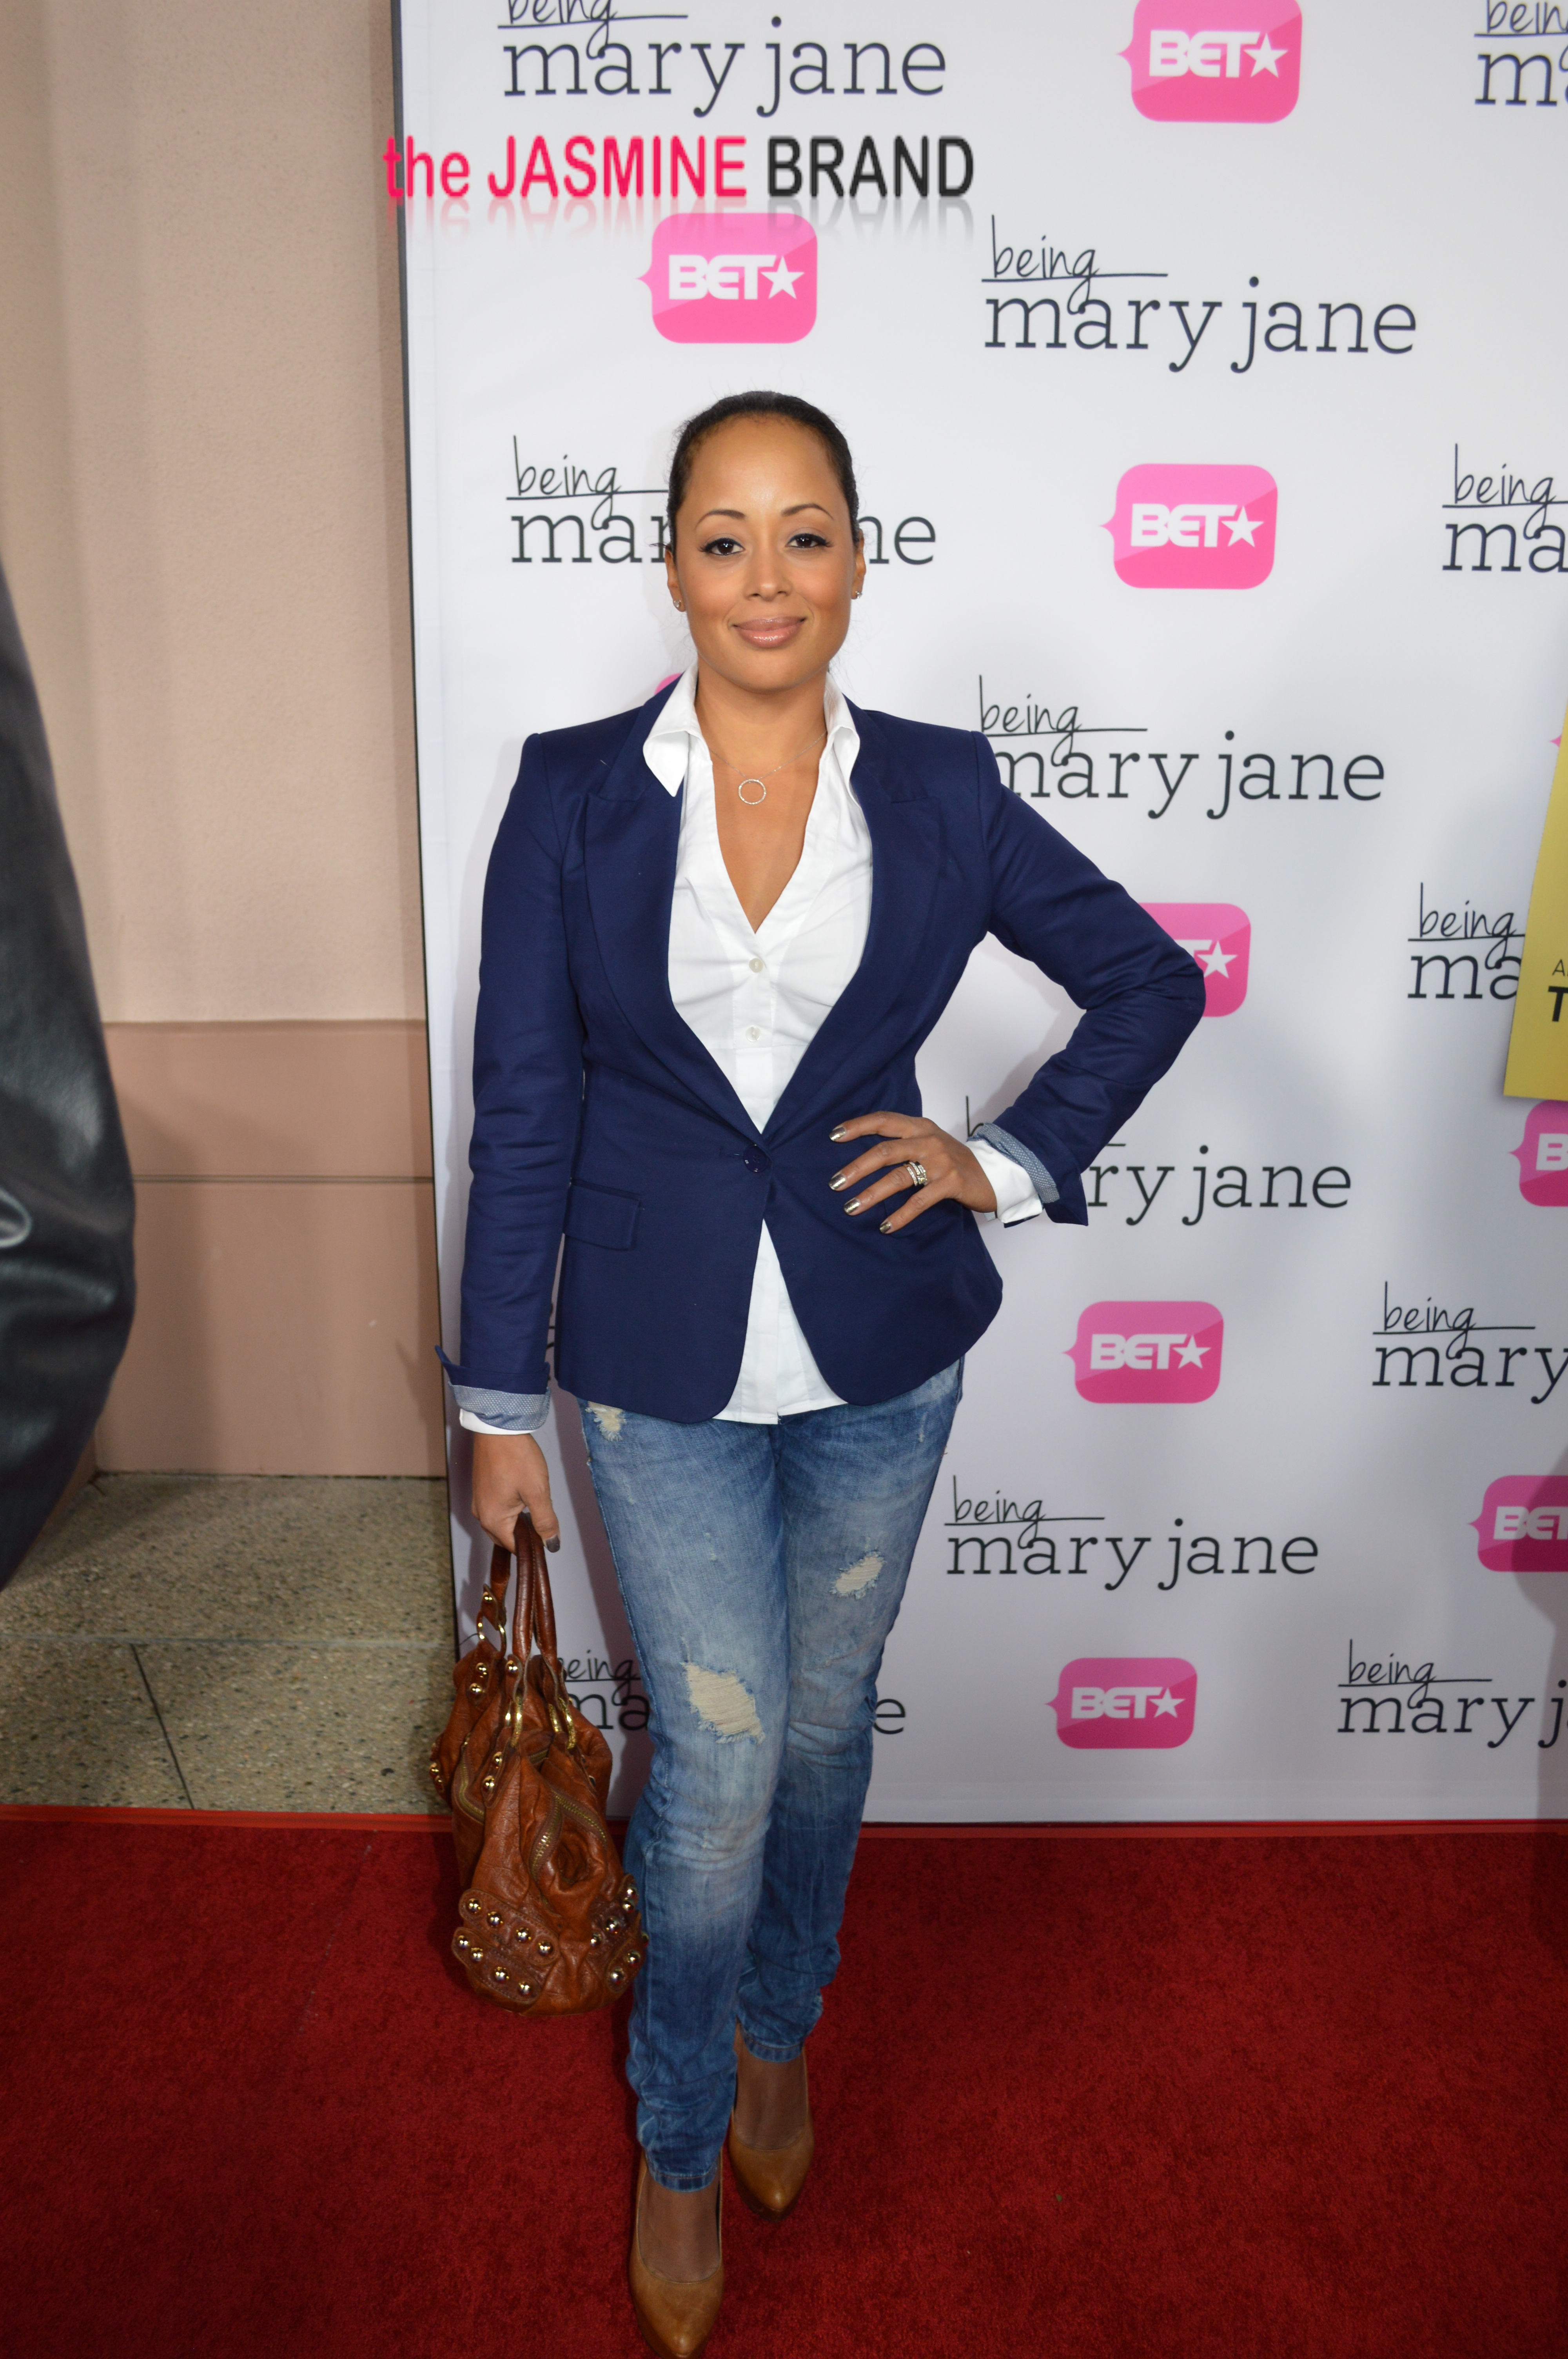 being mary jane premiere-la red carpet-the jasmine brand